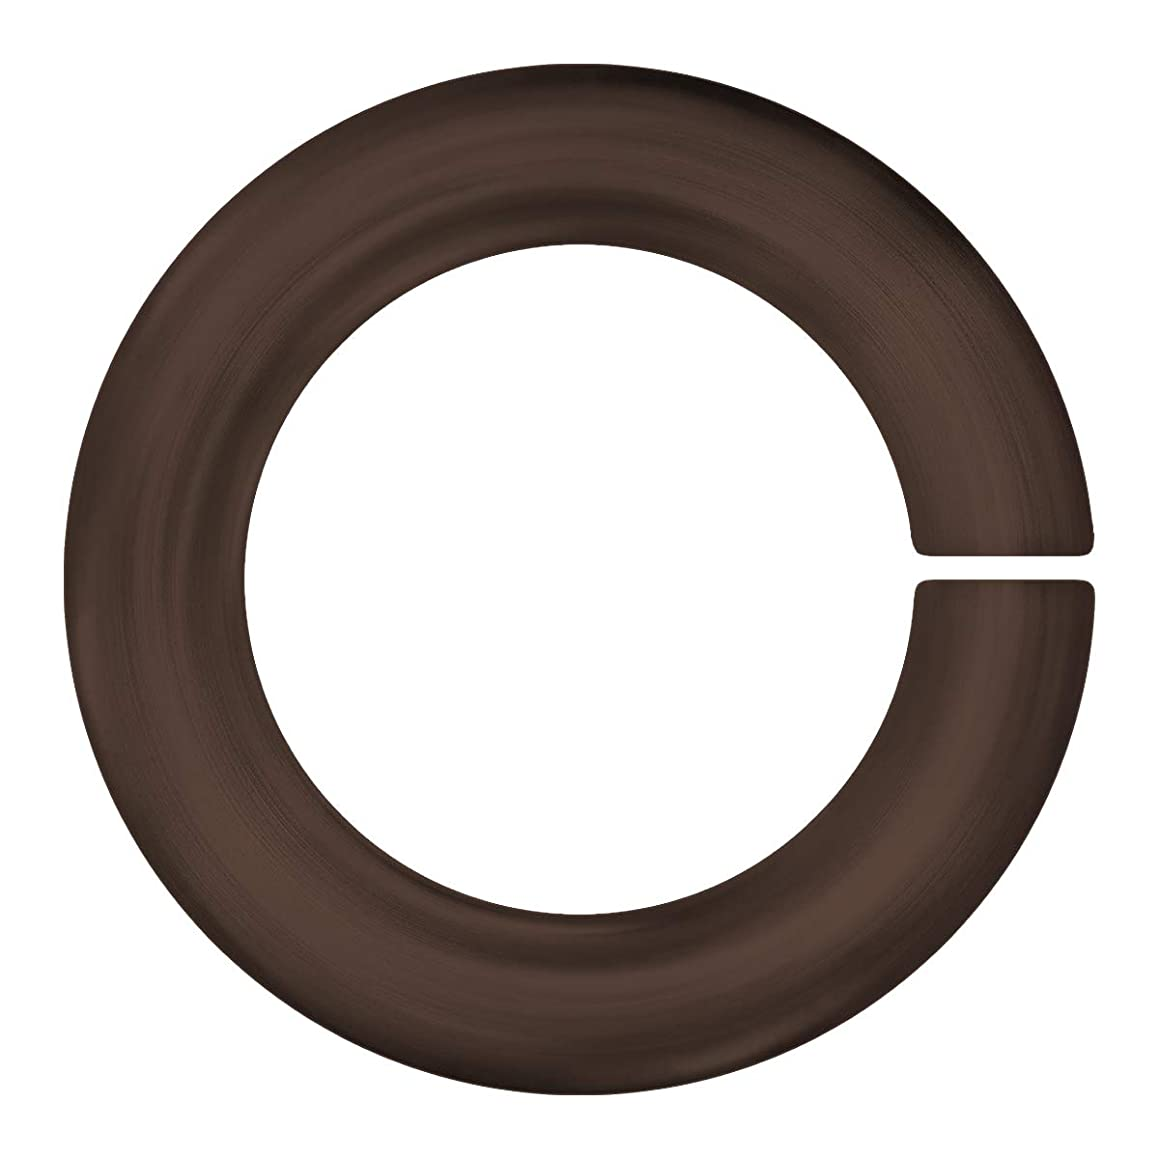 Weave Got Maille Chocolate 18-Gauge 4mm ID Anodized Aluminum Jump Rings - 1 Ounce